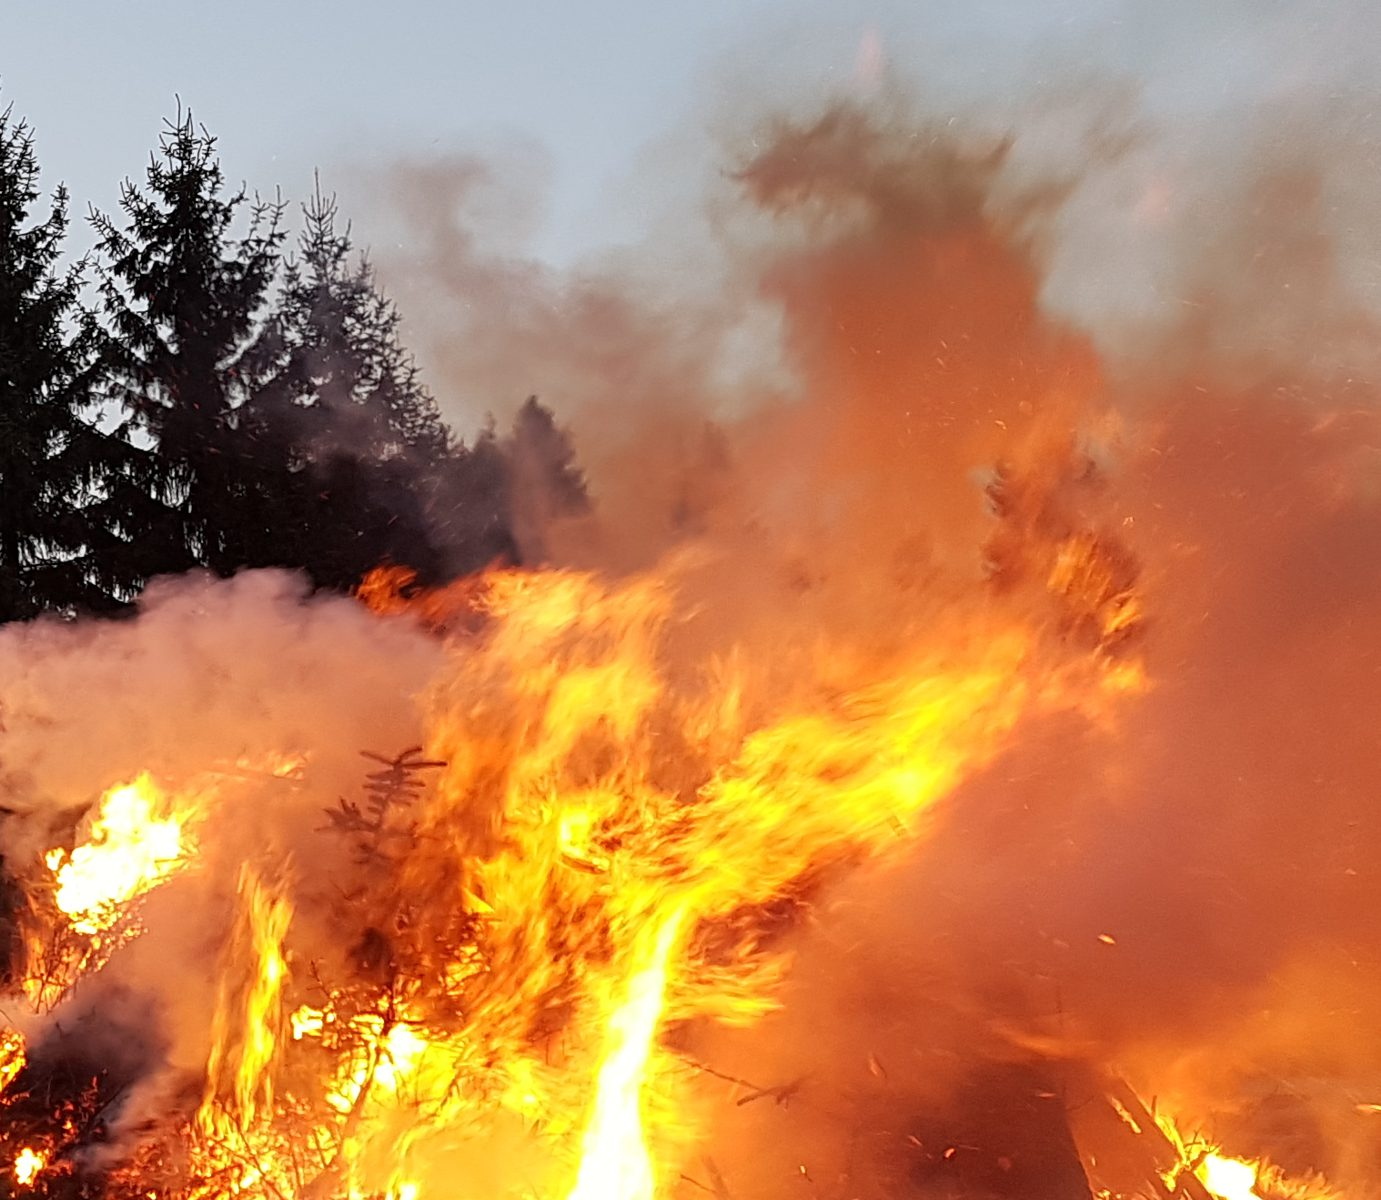 Osterfeuer in Holzhau 2020